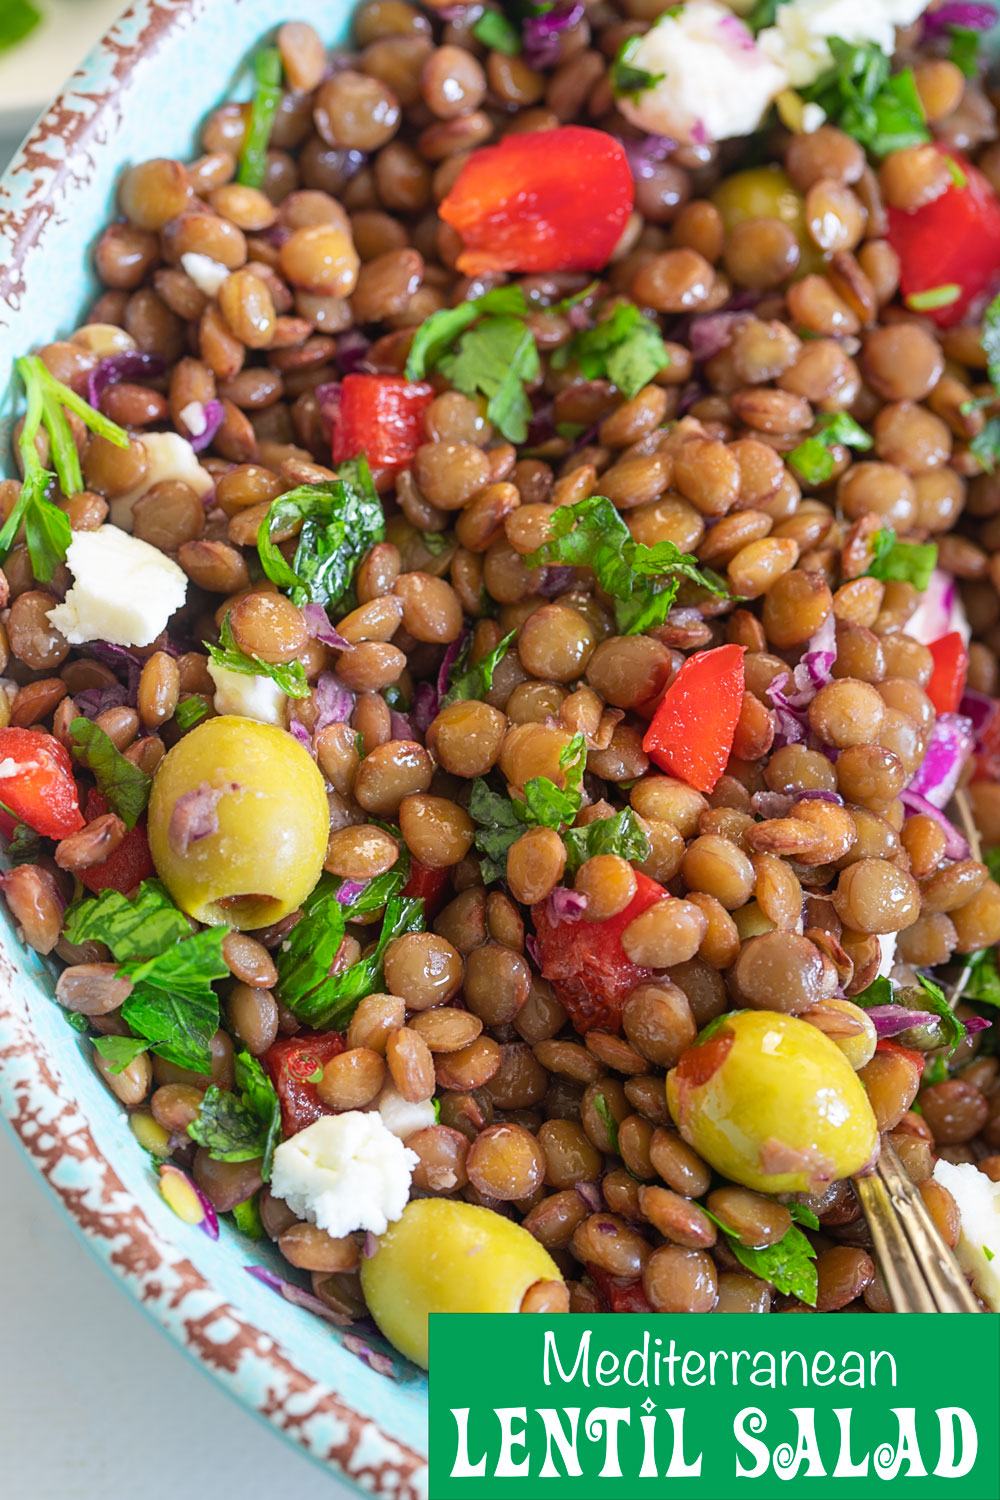 Quick and easy 10 minute Mediterranean Lentil Salad cooked in the Instant Pot is a healthy, protein packed lunch recipe that is perfect for Mediterranean diet